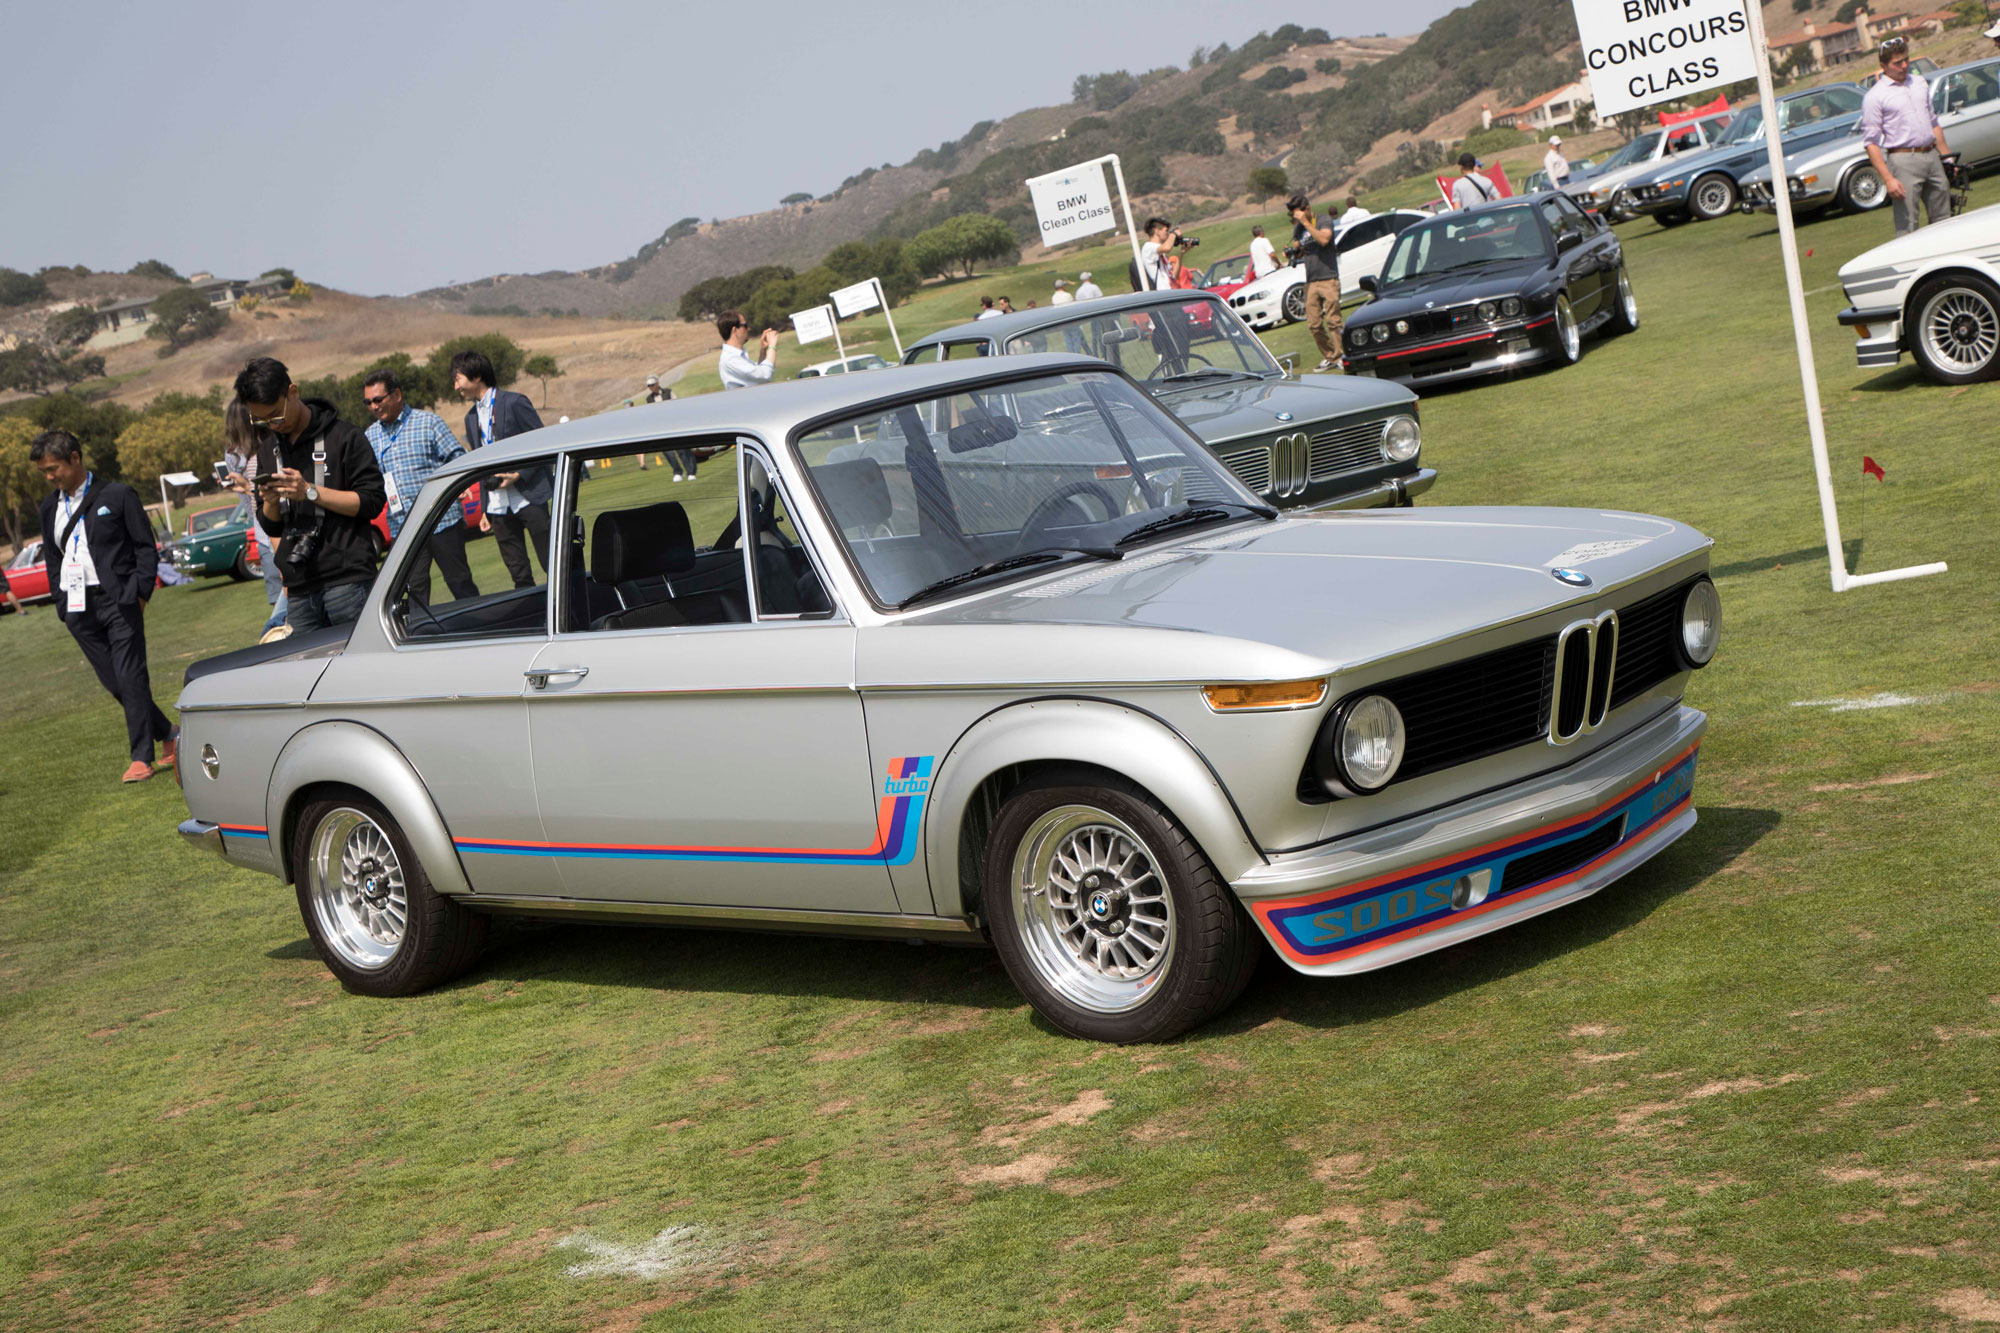 The 2002 Turbo was BMW's first production turbocharged car and a case study in turbo lag. This well-preserved car is owned by Joe Cervantes and took first place in the BMW Concours class. The reverse script on the front bumper was there, of course, so drivers of other cars could read it in their rearview mirrors and get out of the way. A KKK turbocharger upped the stock 2002tii's output from 130 horsepower to 170, big numbers back in 1974.